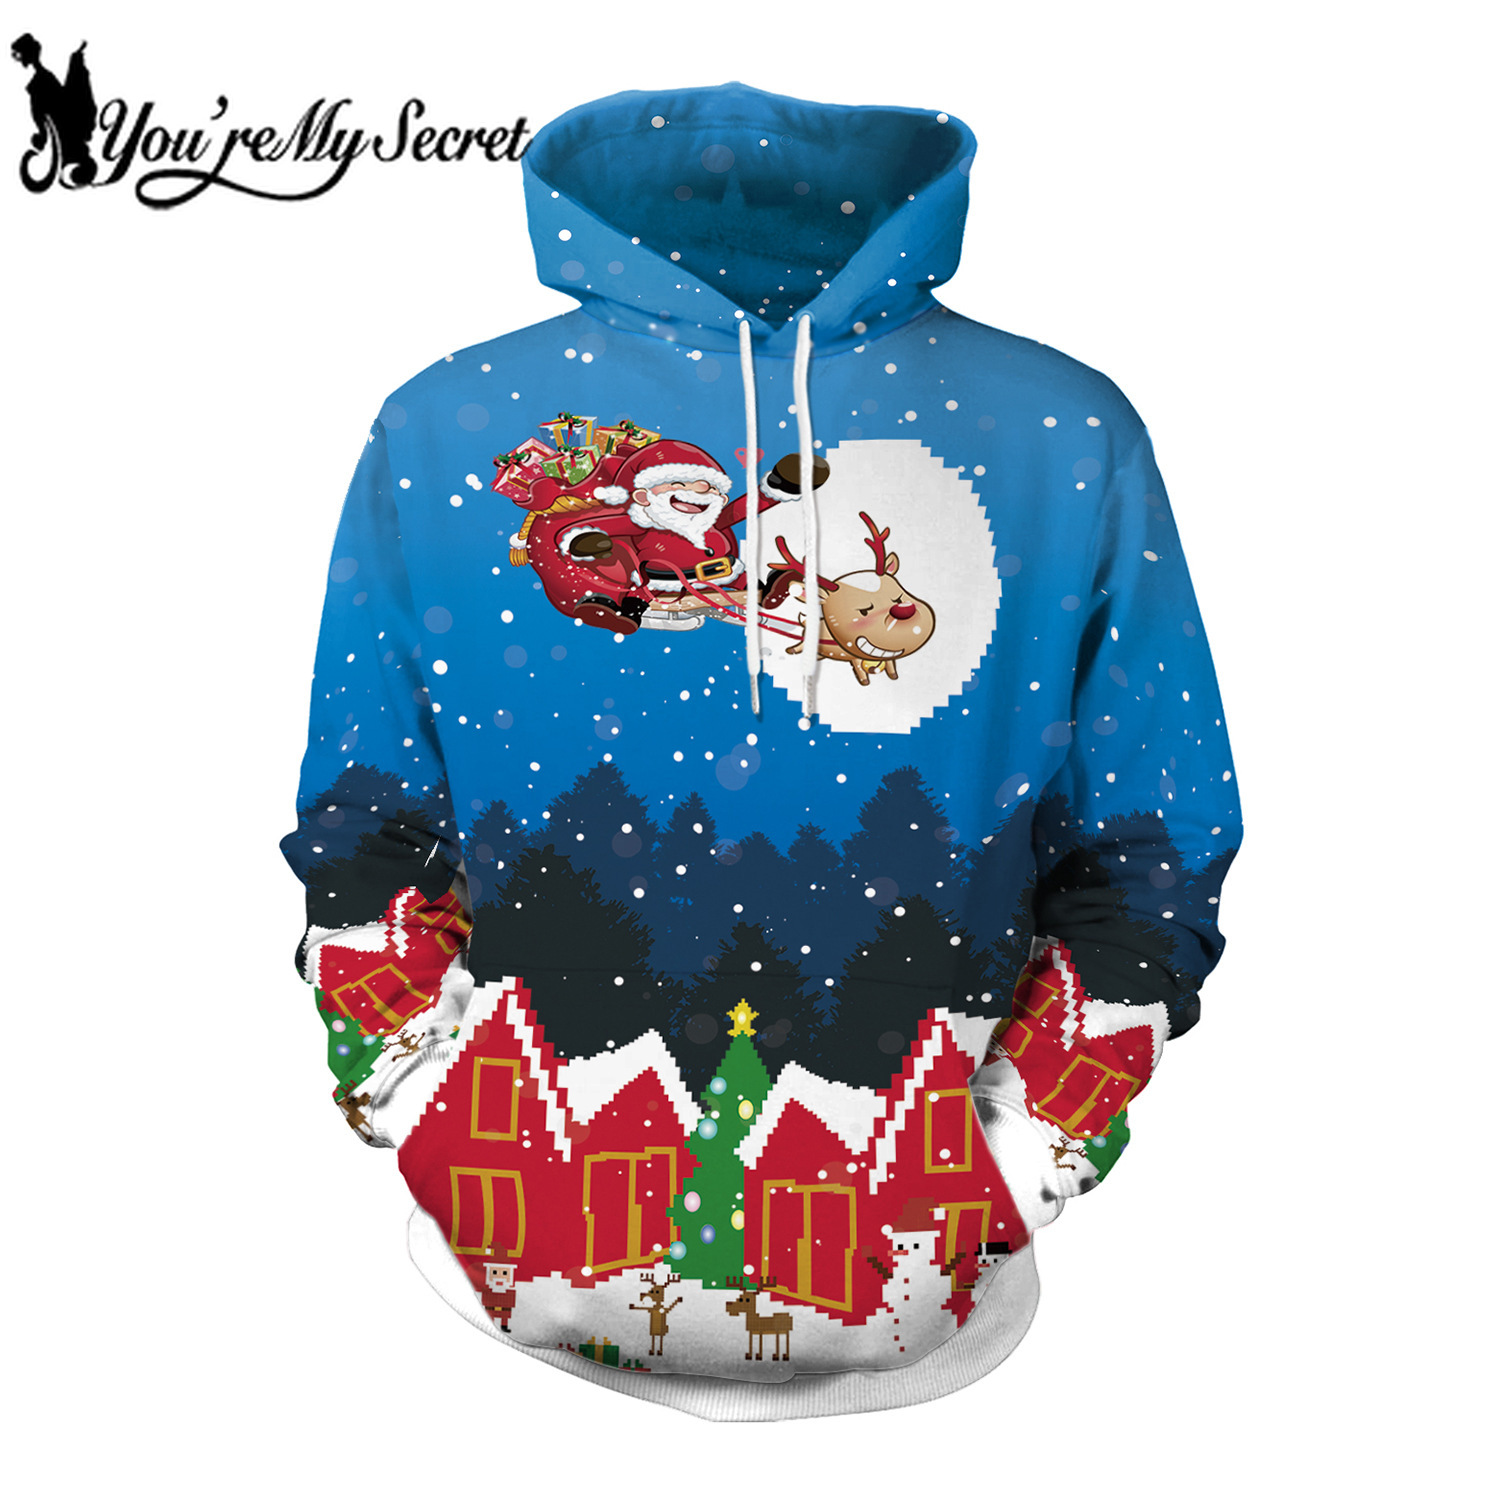 [You're My Secret] 2019 New Fashion Christmas Hooded Hoodie Long Sleeve Festival Santa Claus Print Sweatshirt for Women and Men